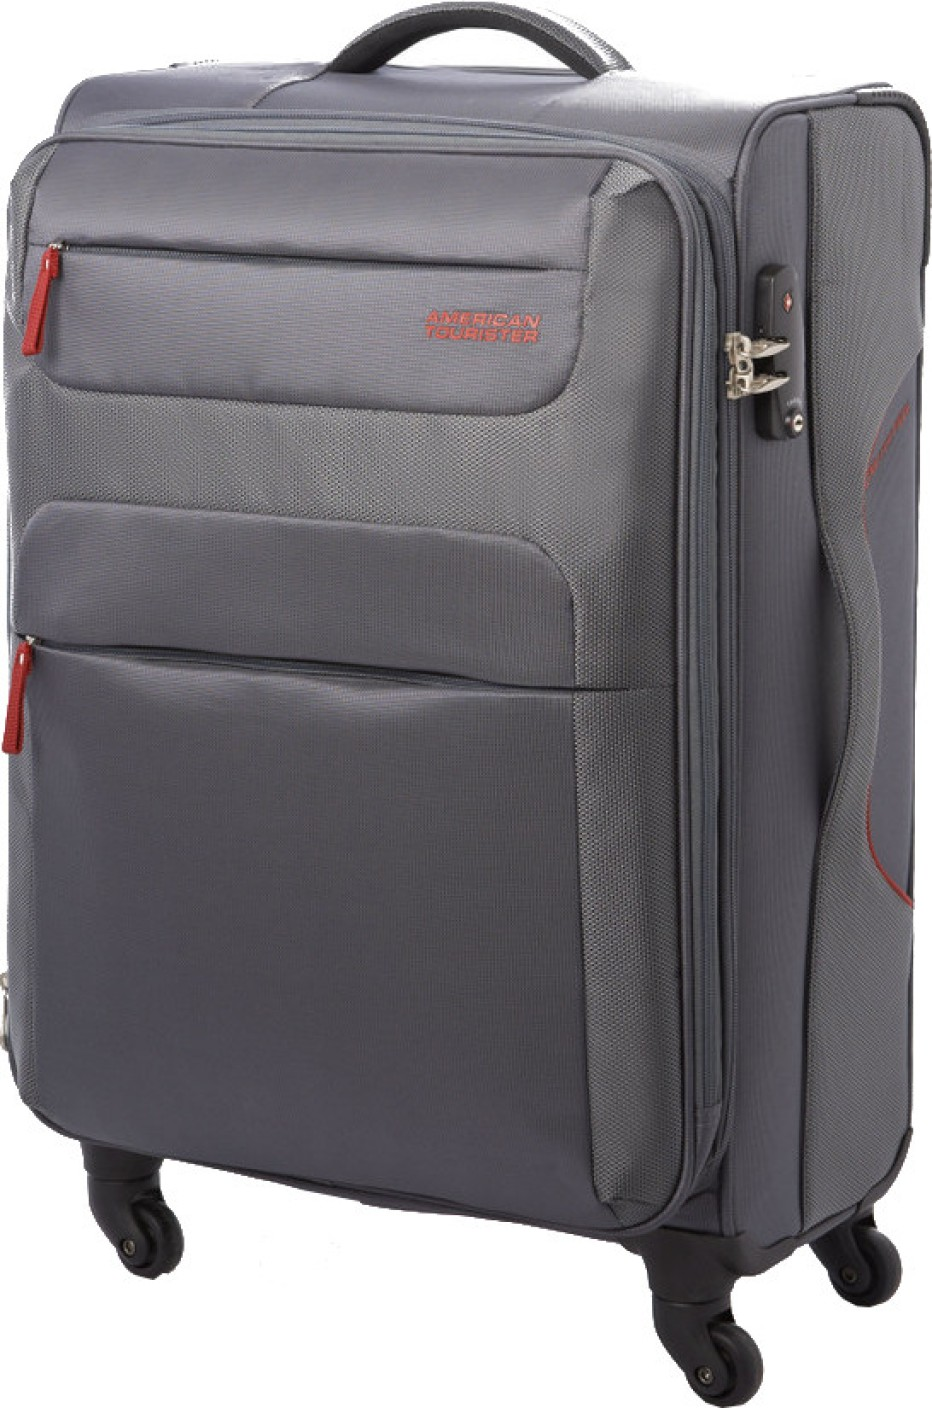 American Tourister Ski Expandable Cabin Luggage 21 Inch